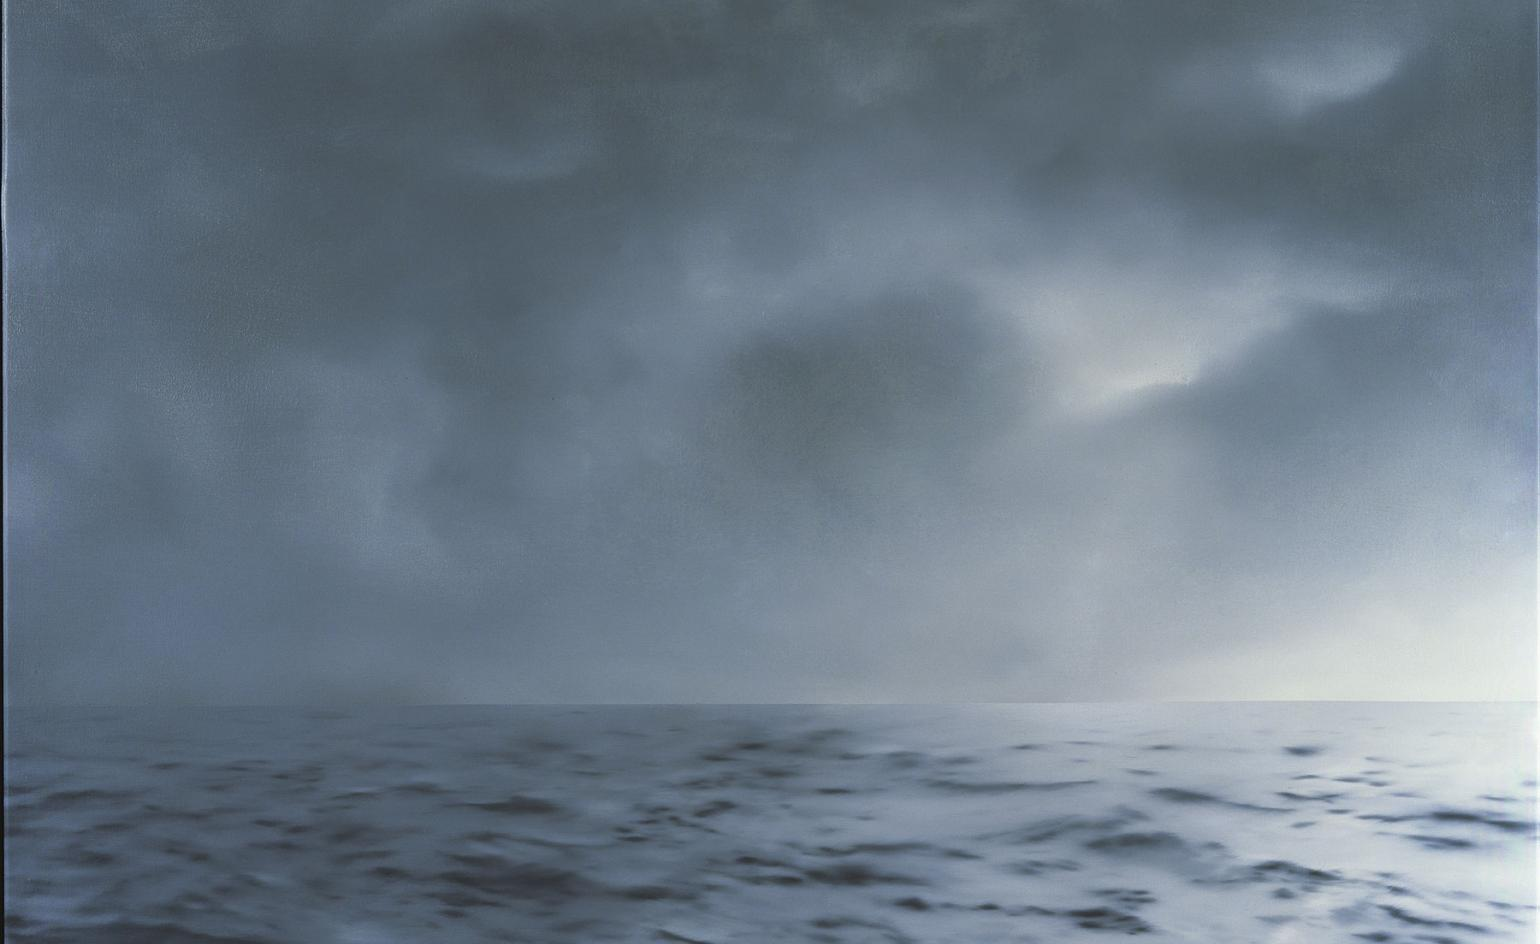 Guggenheim Bilbao offers new perspectives on Gerhard Richter's seascapes